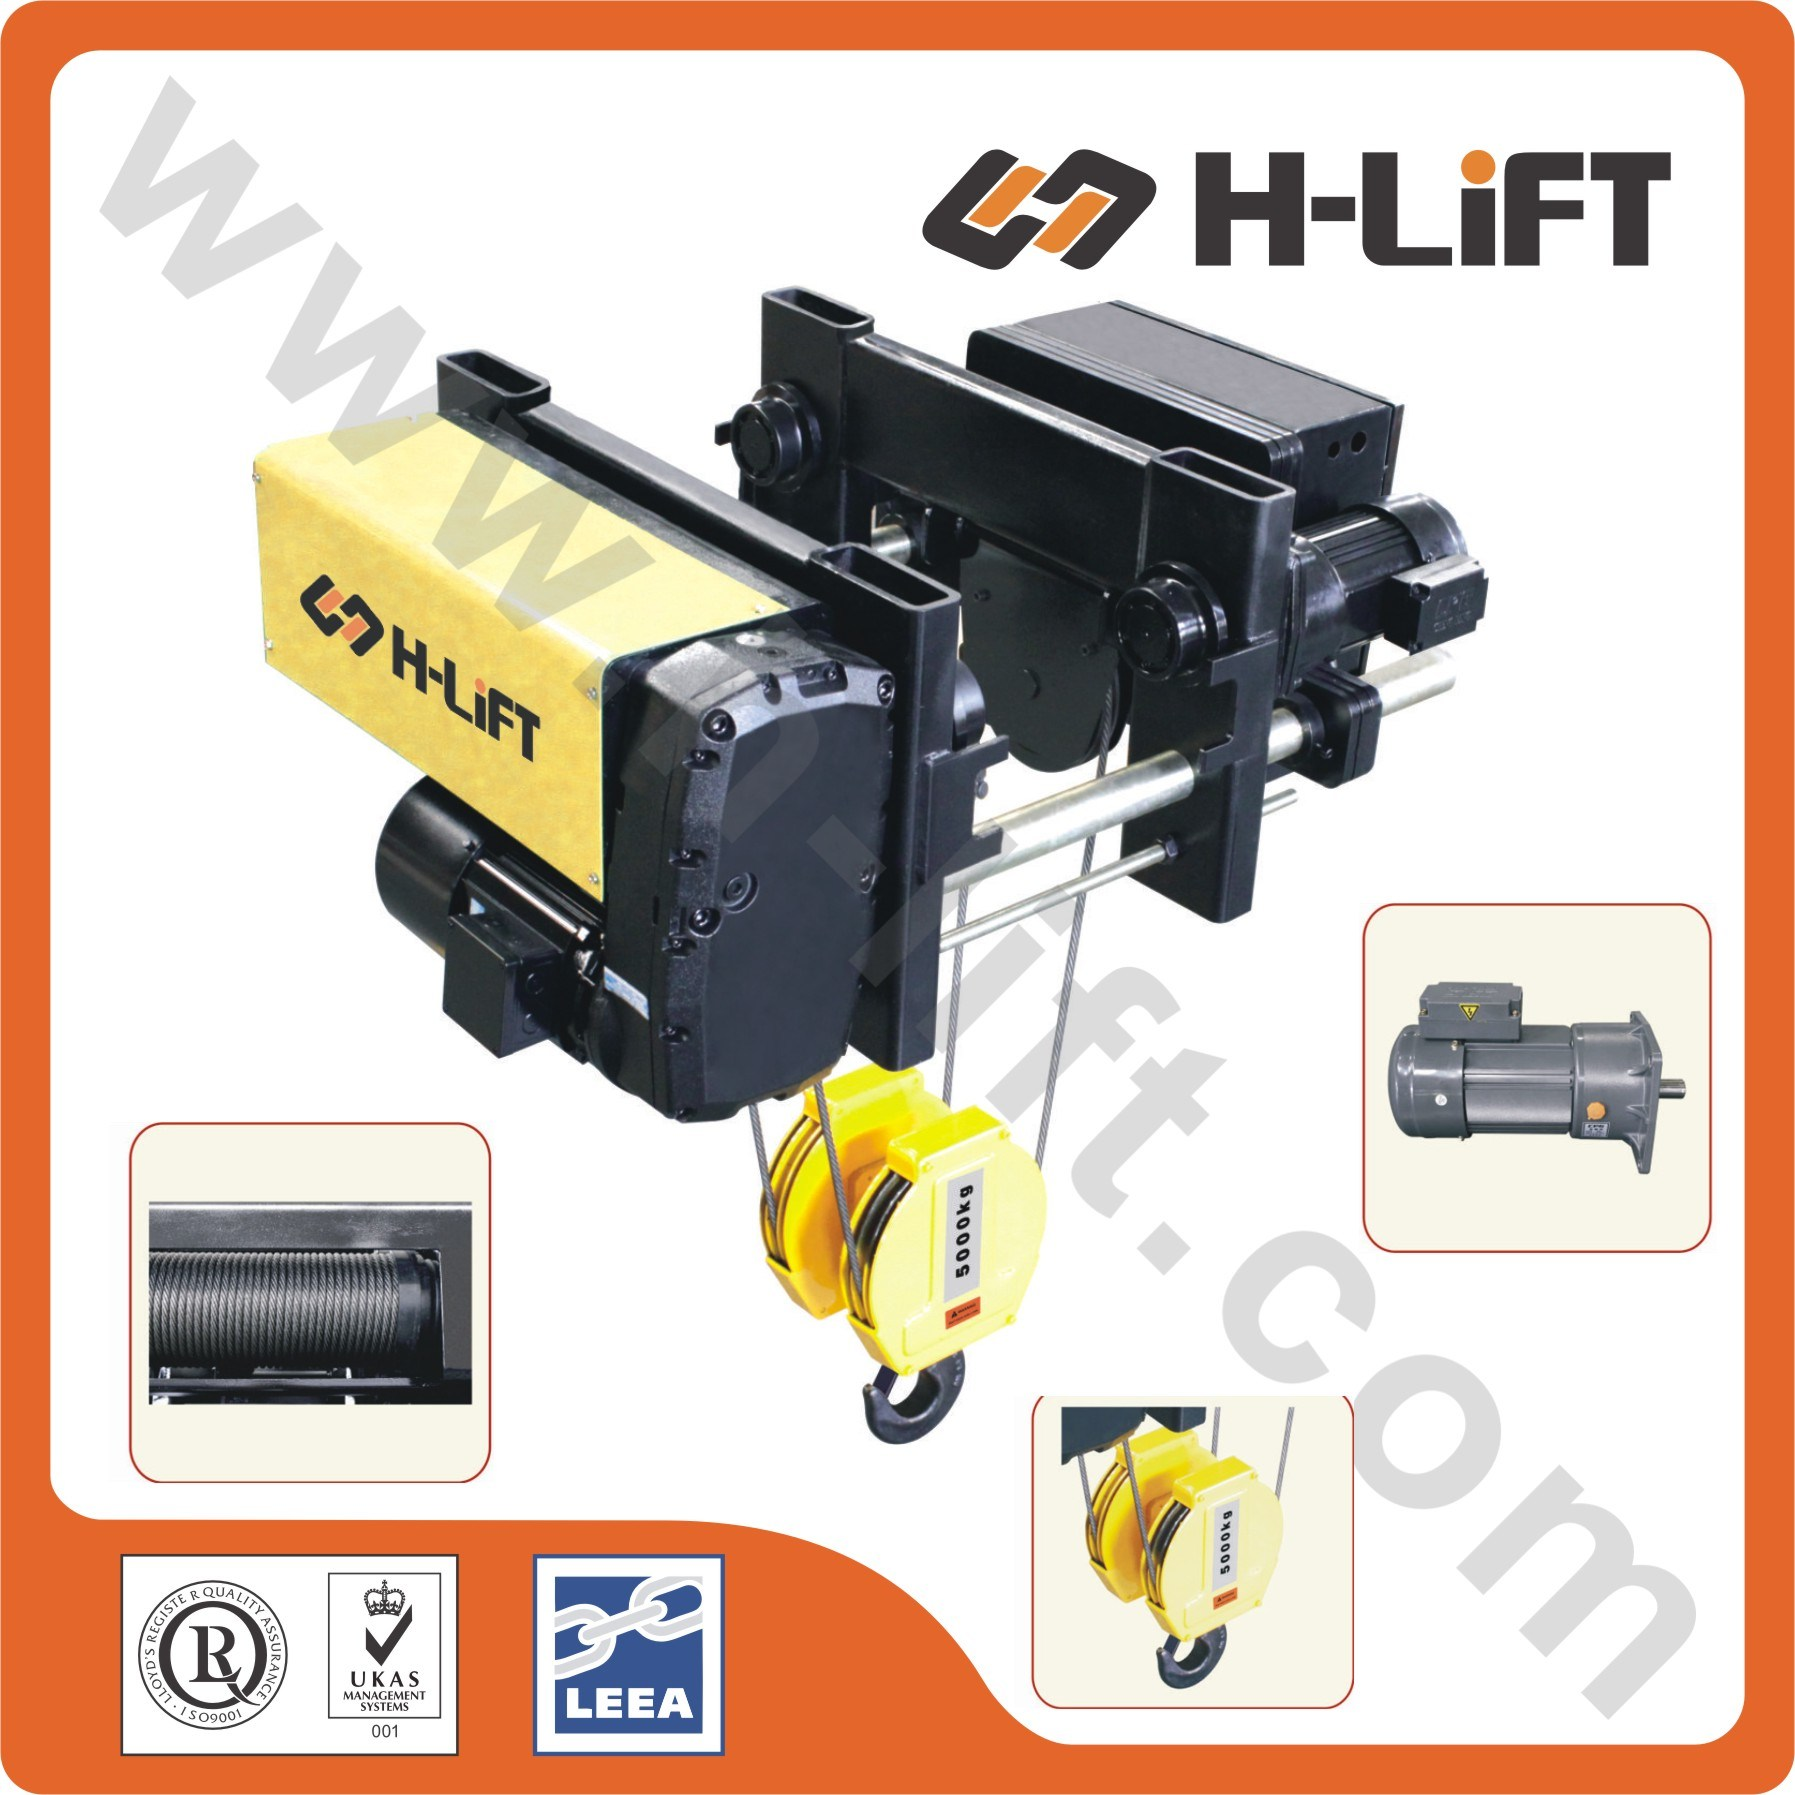 China Whl-D Type Low Headroom Electric Wire Rope Hoist - China ...